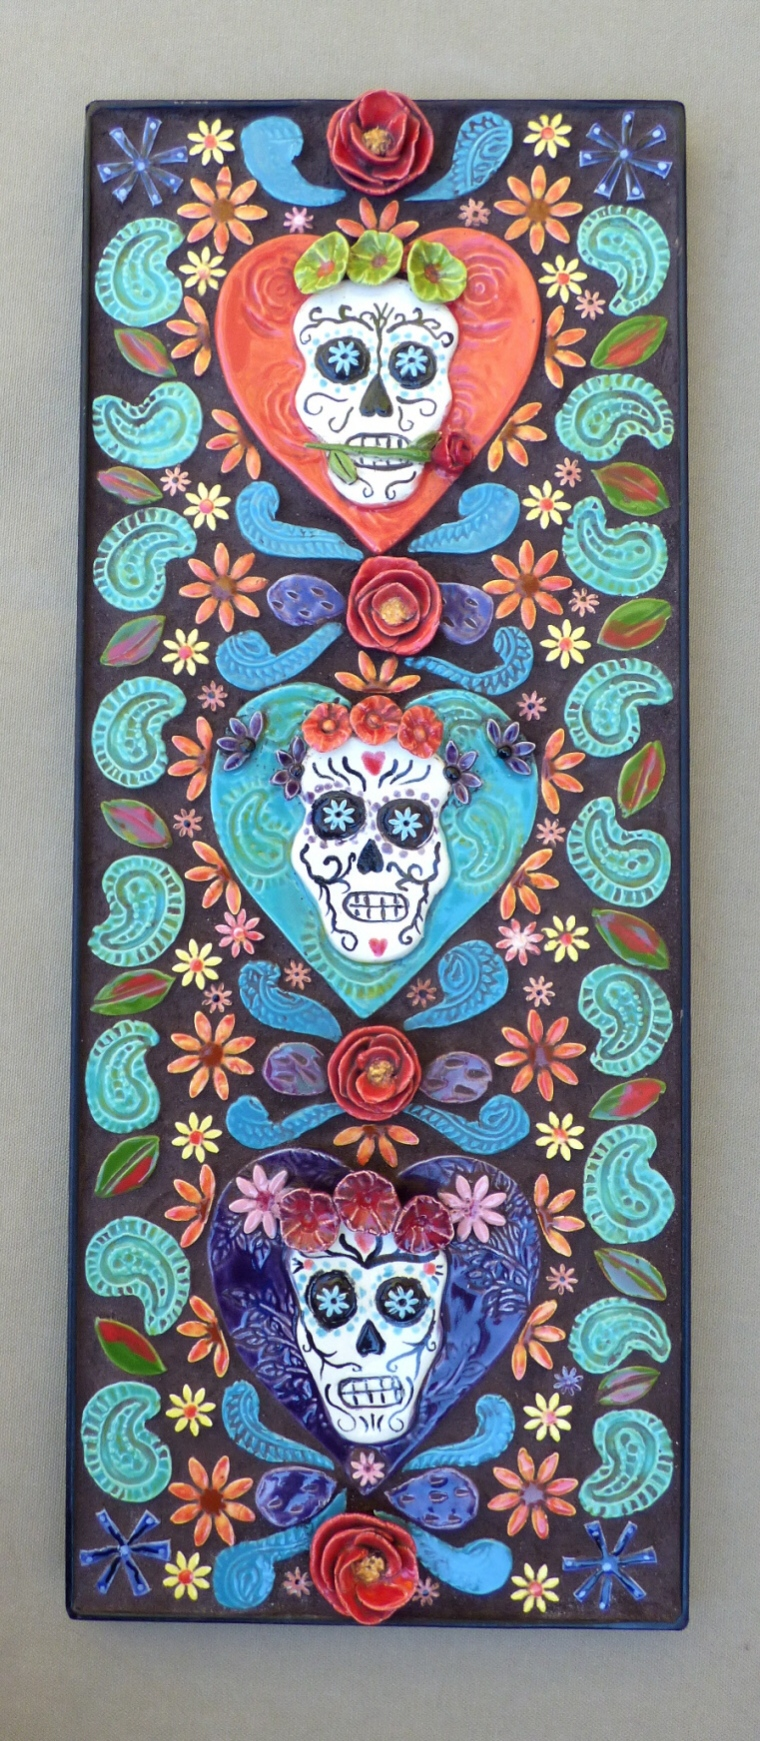 Chlad, Robin, Sugar Skull Trio, Mosaic tile, 3-d wall piece, 8 inches x 20 inches, 415.00